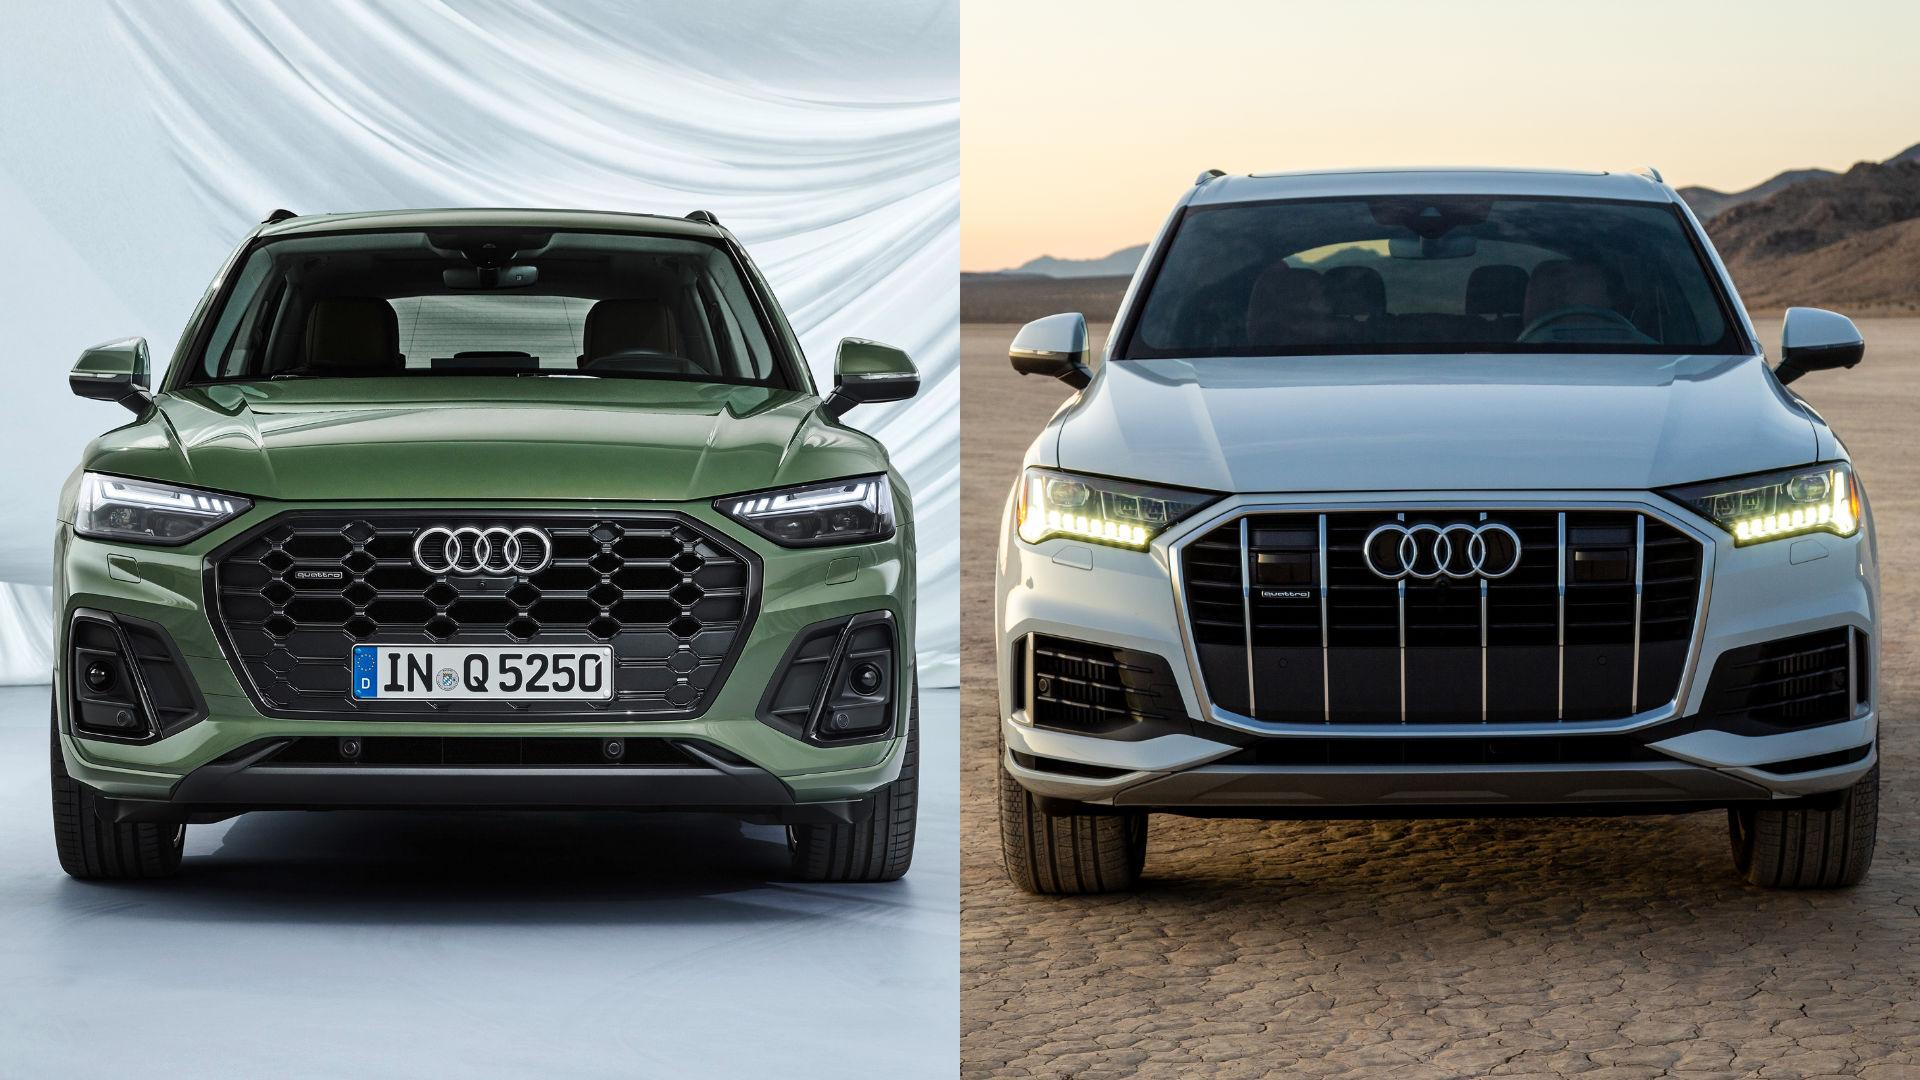 Audi Q5 vs Q7: What's The Difference?